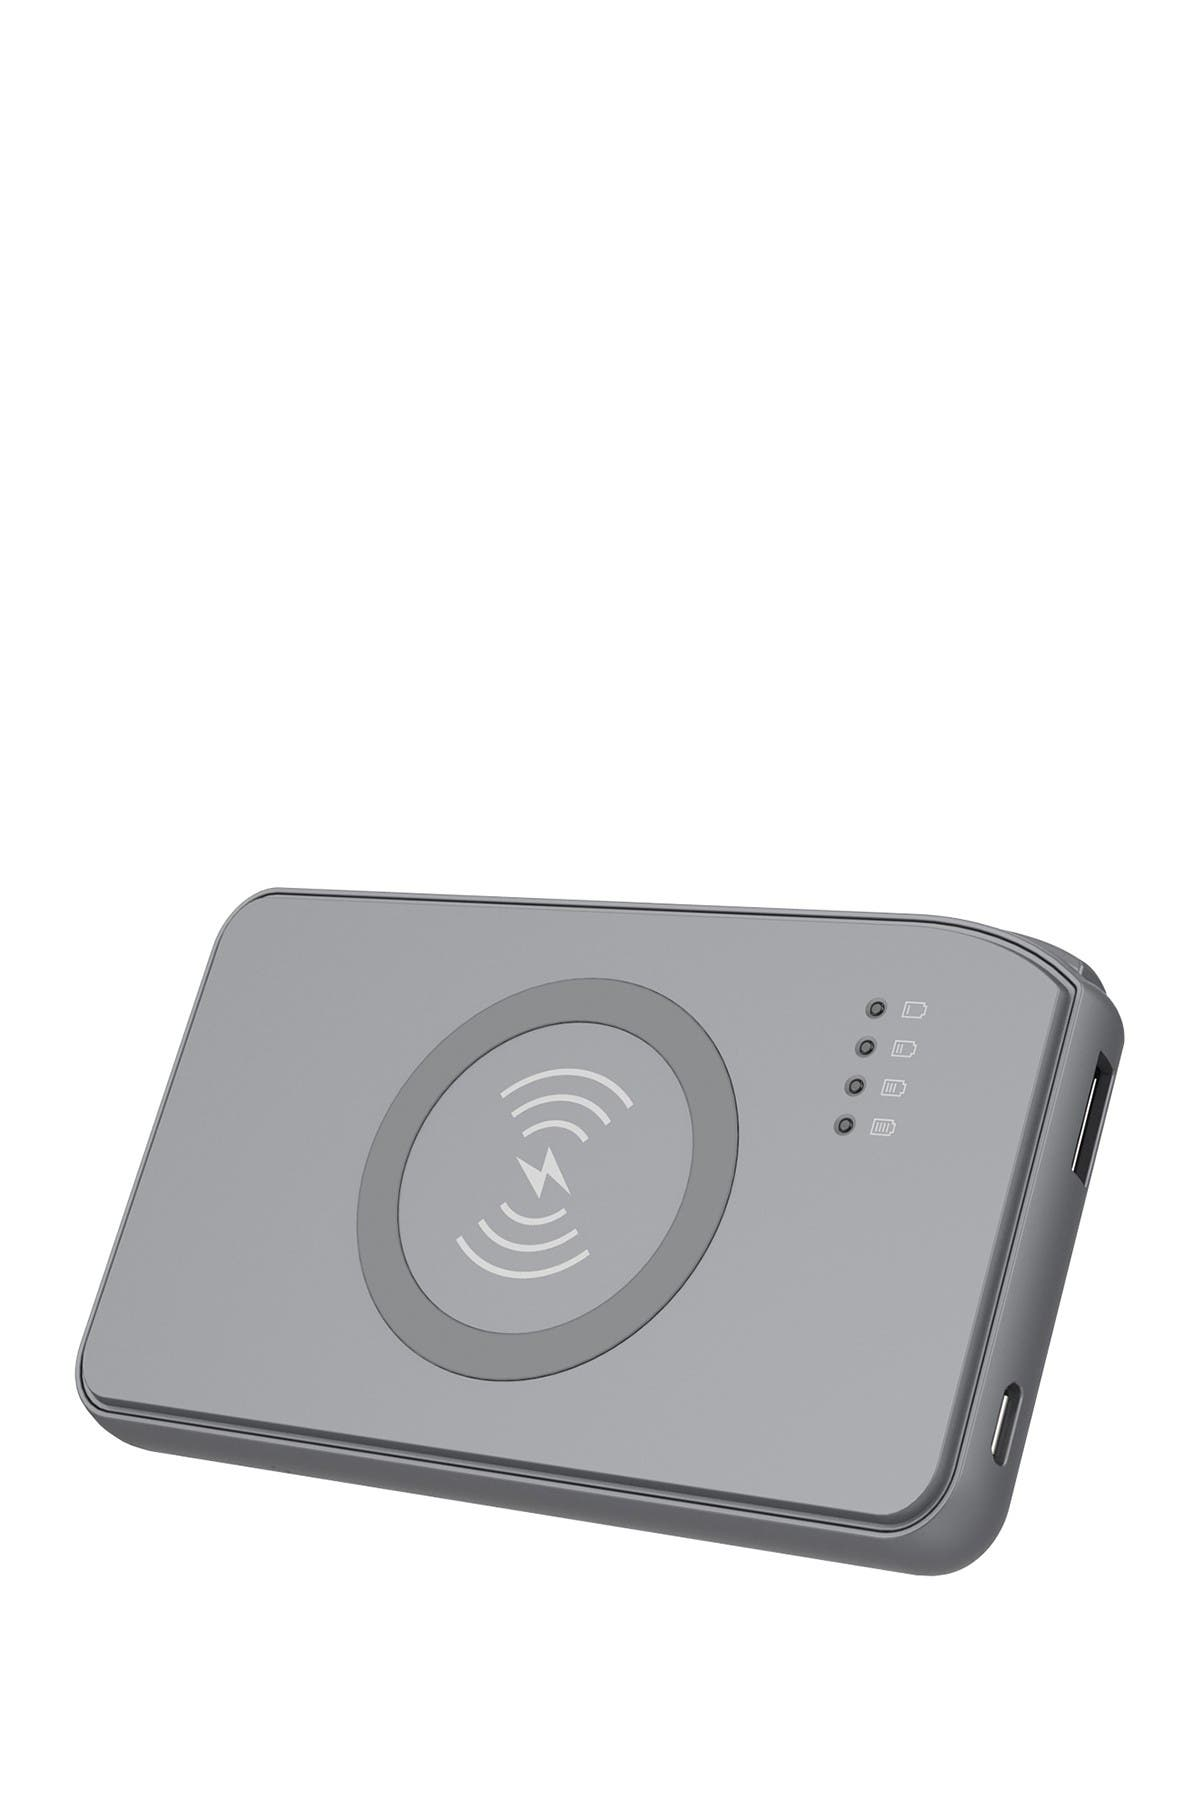 Image of Tech Elements Space Grey Power bank with wireless charger in-Space Grey